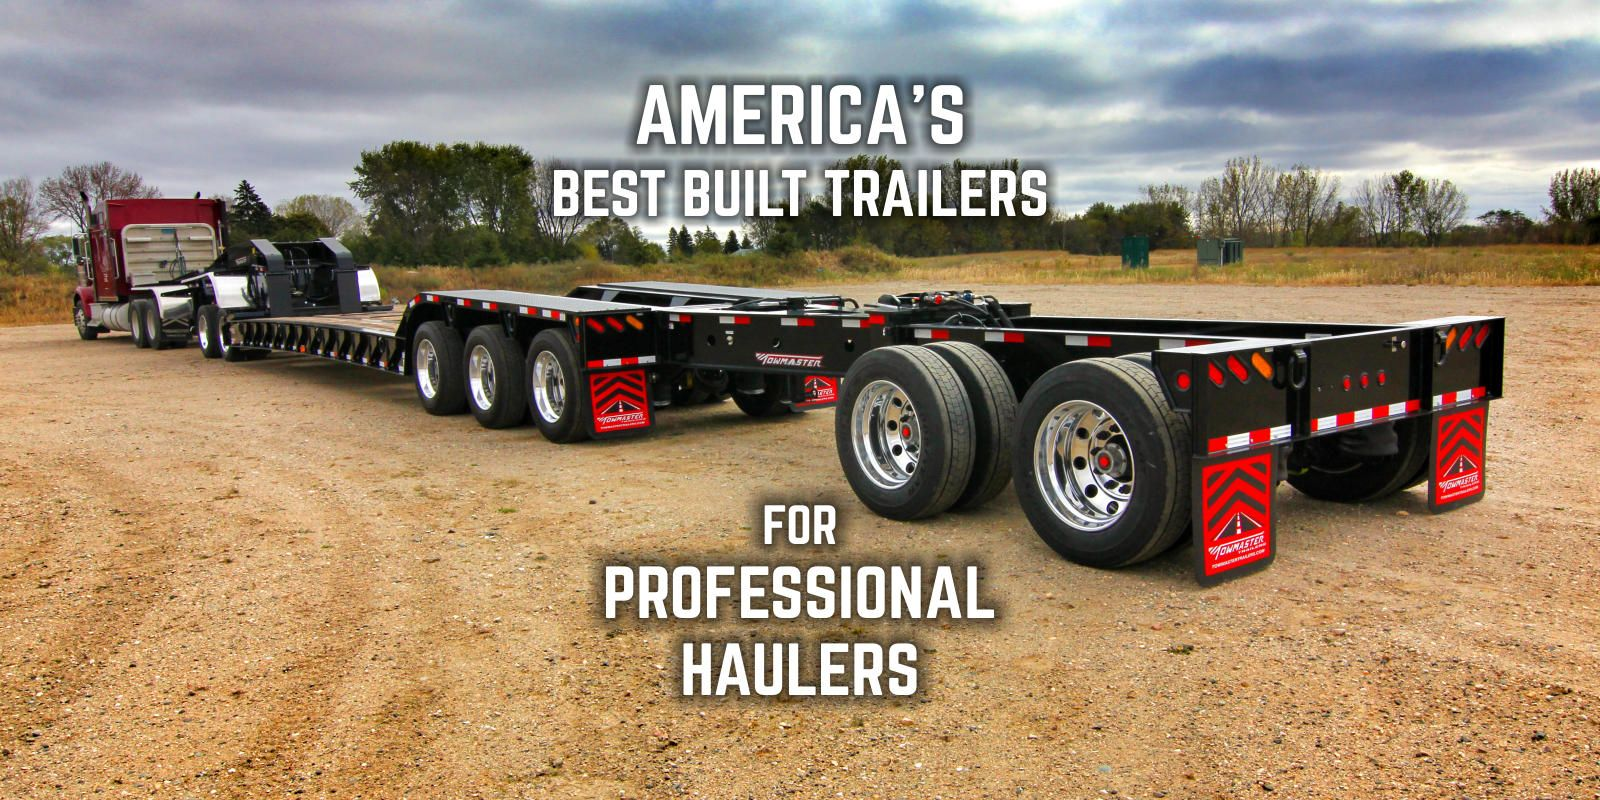 Towmaster Trailers Americas Best Built For Professional Wiring Diagrams Tilt Car Hauler Trailer Plans What Makes A Great